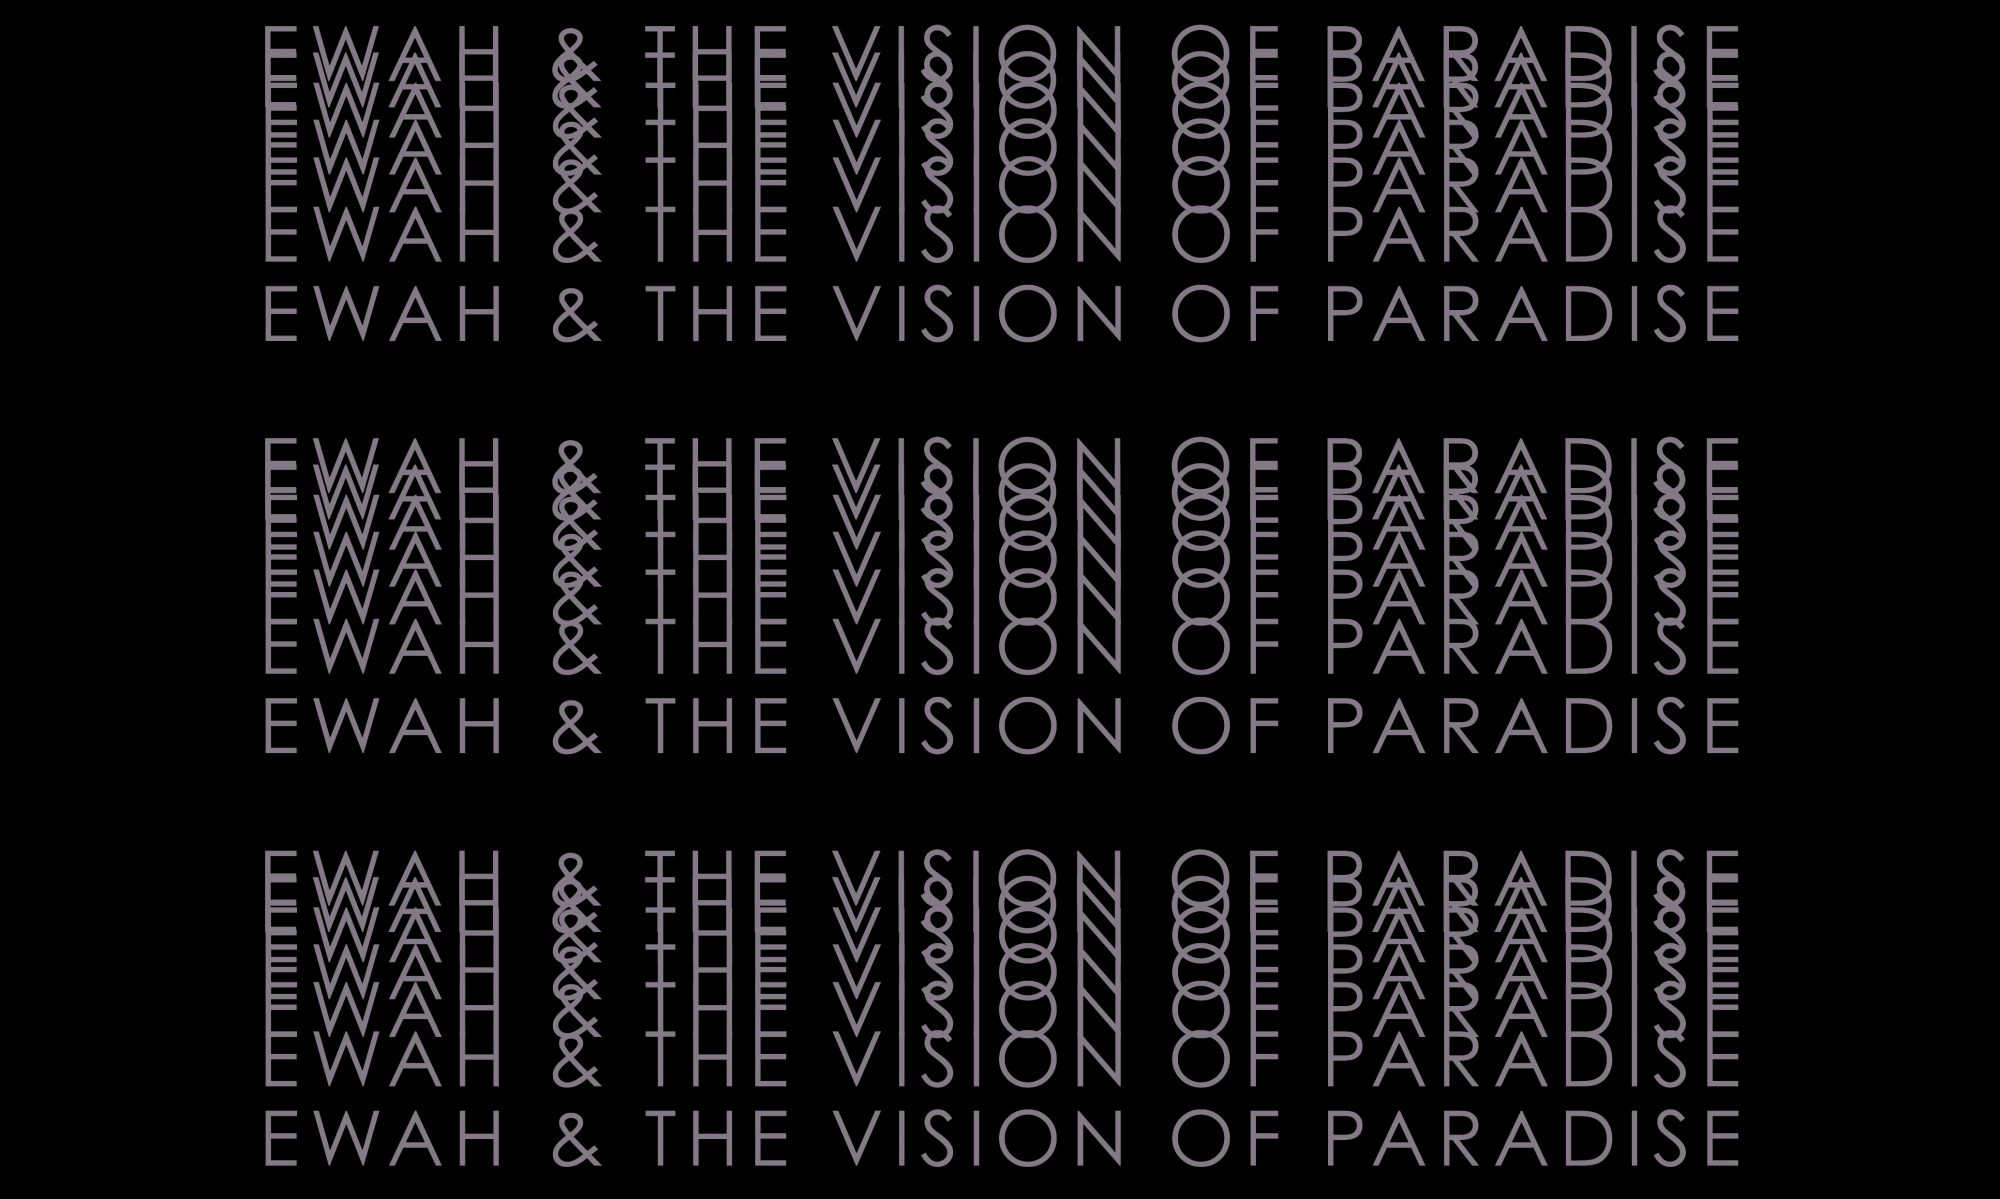 EWAH & THE VISION OF PARADISE